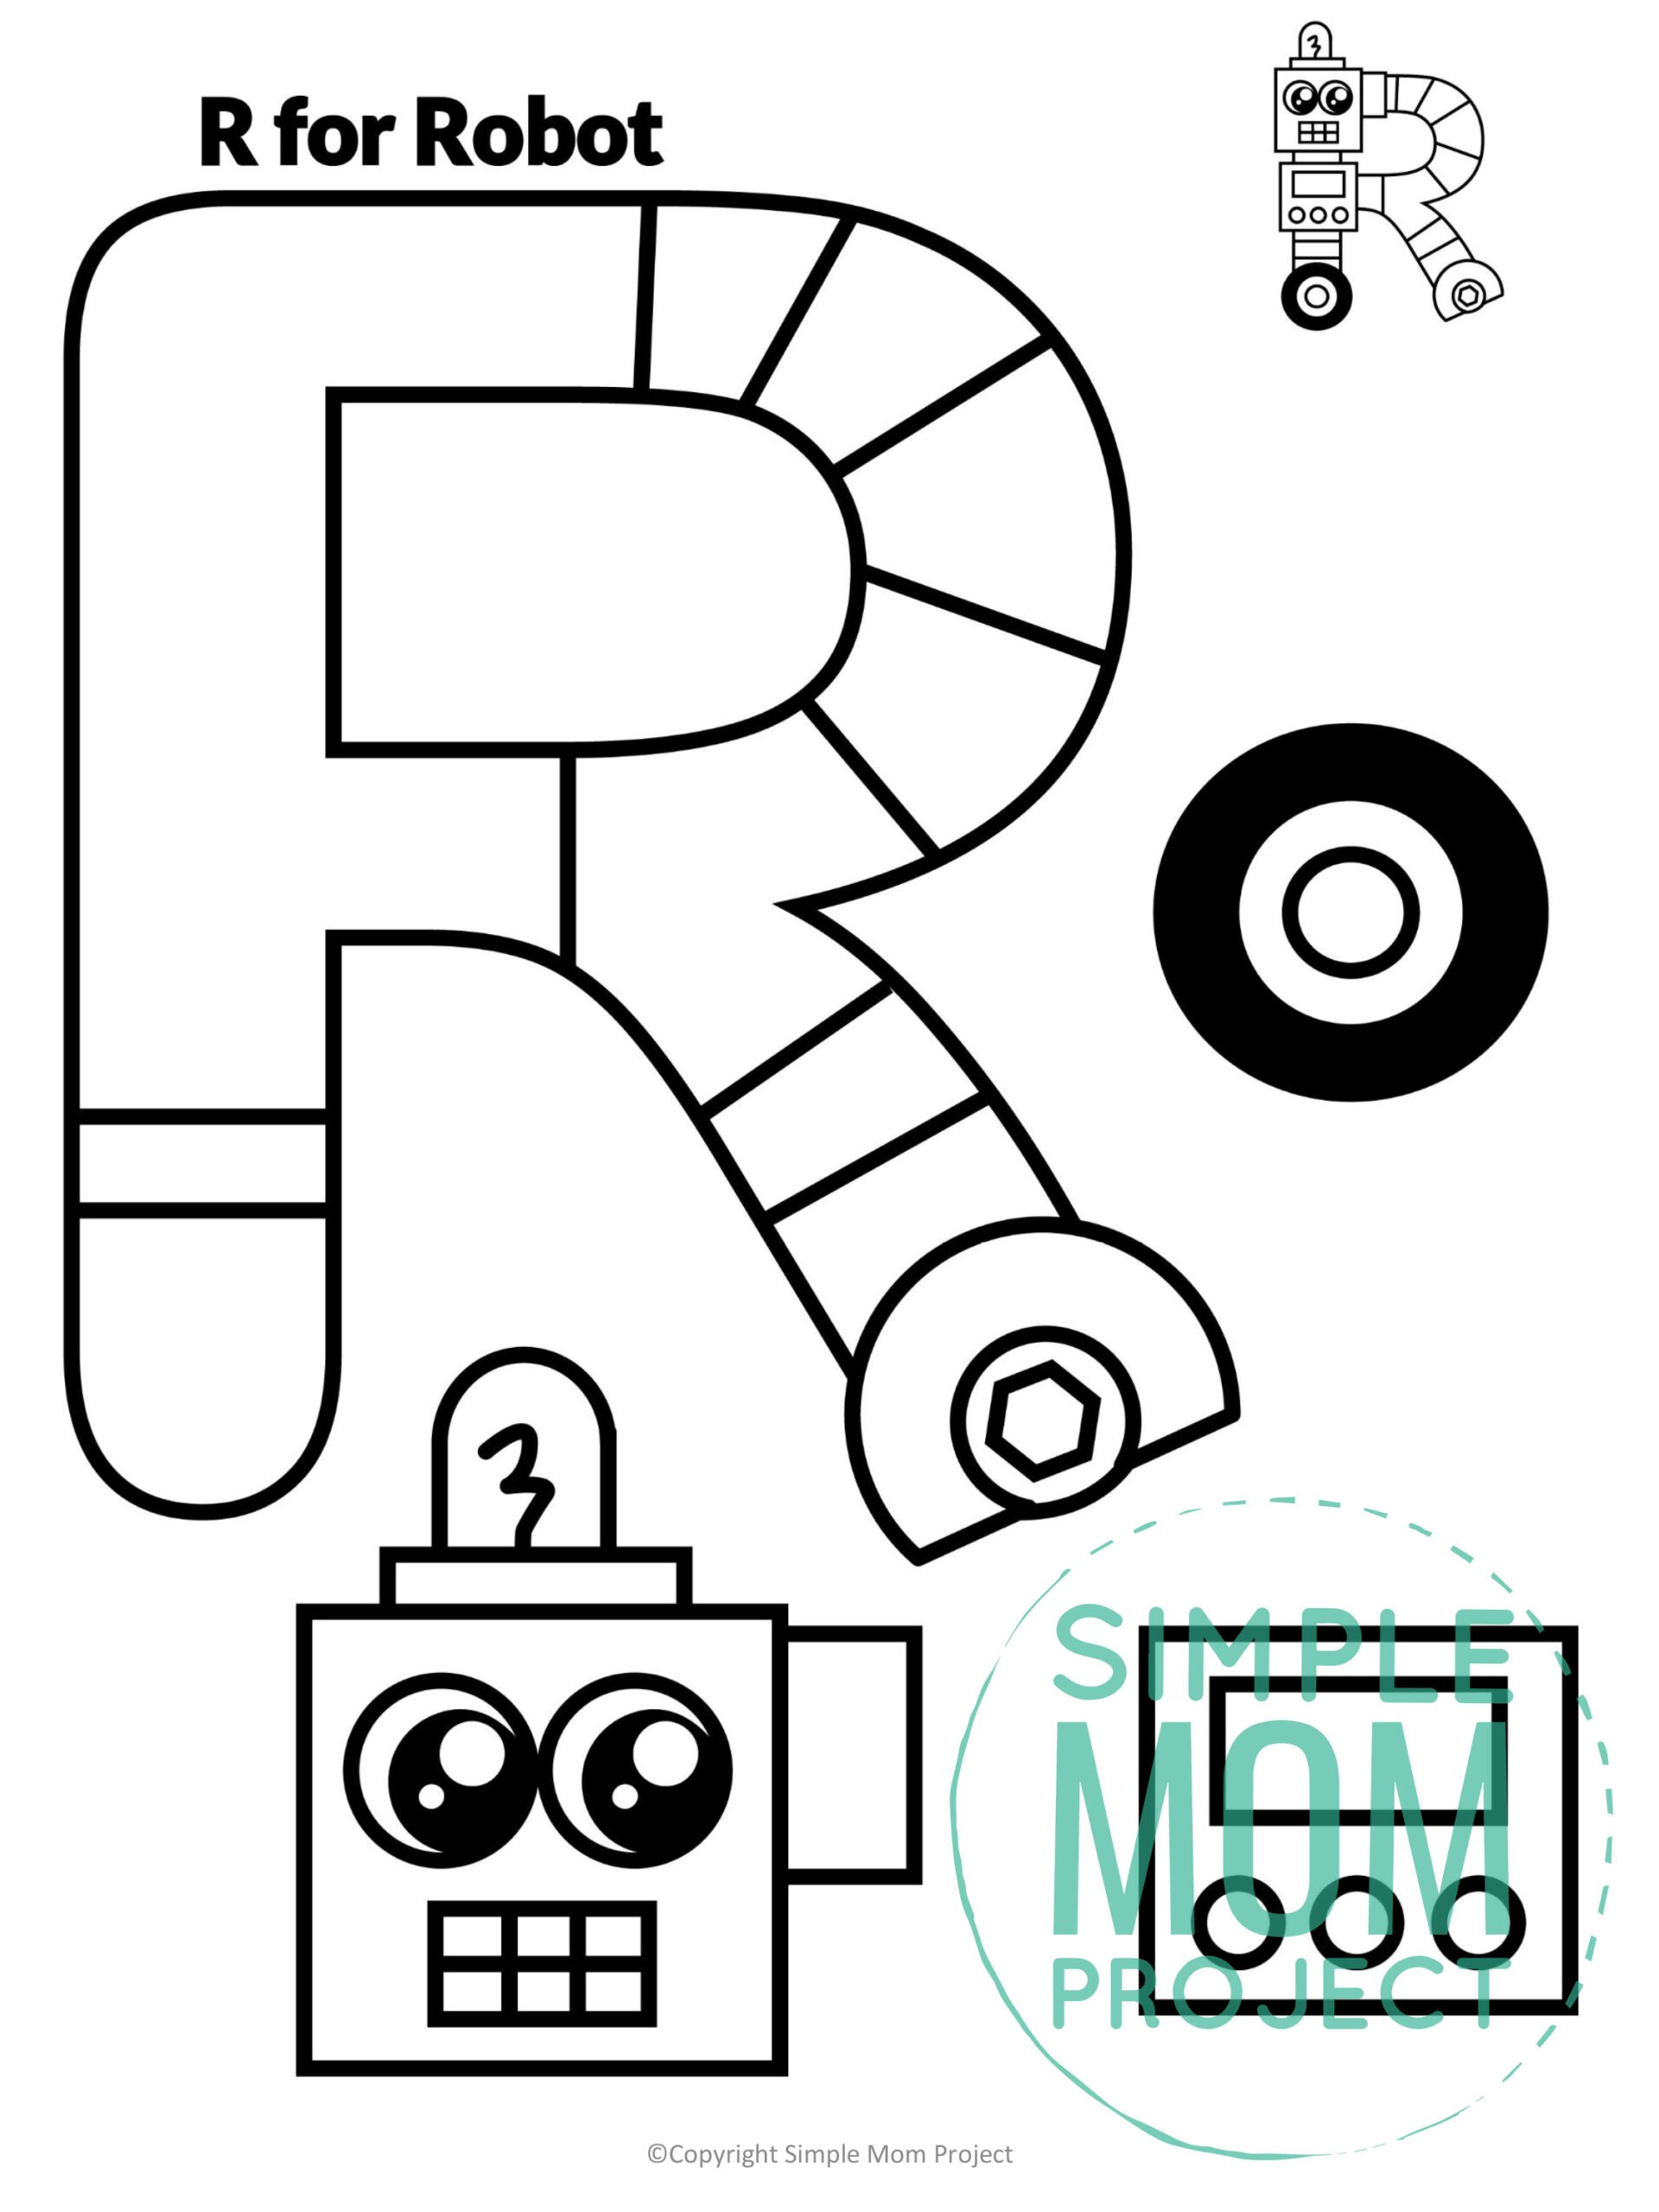 R is for Robot Printable Craft Robot Letter R Craft for Kids, preschoolers, toddlers and kindergartners